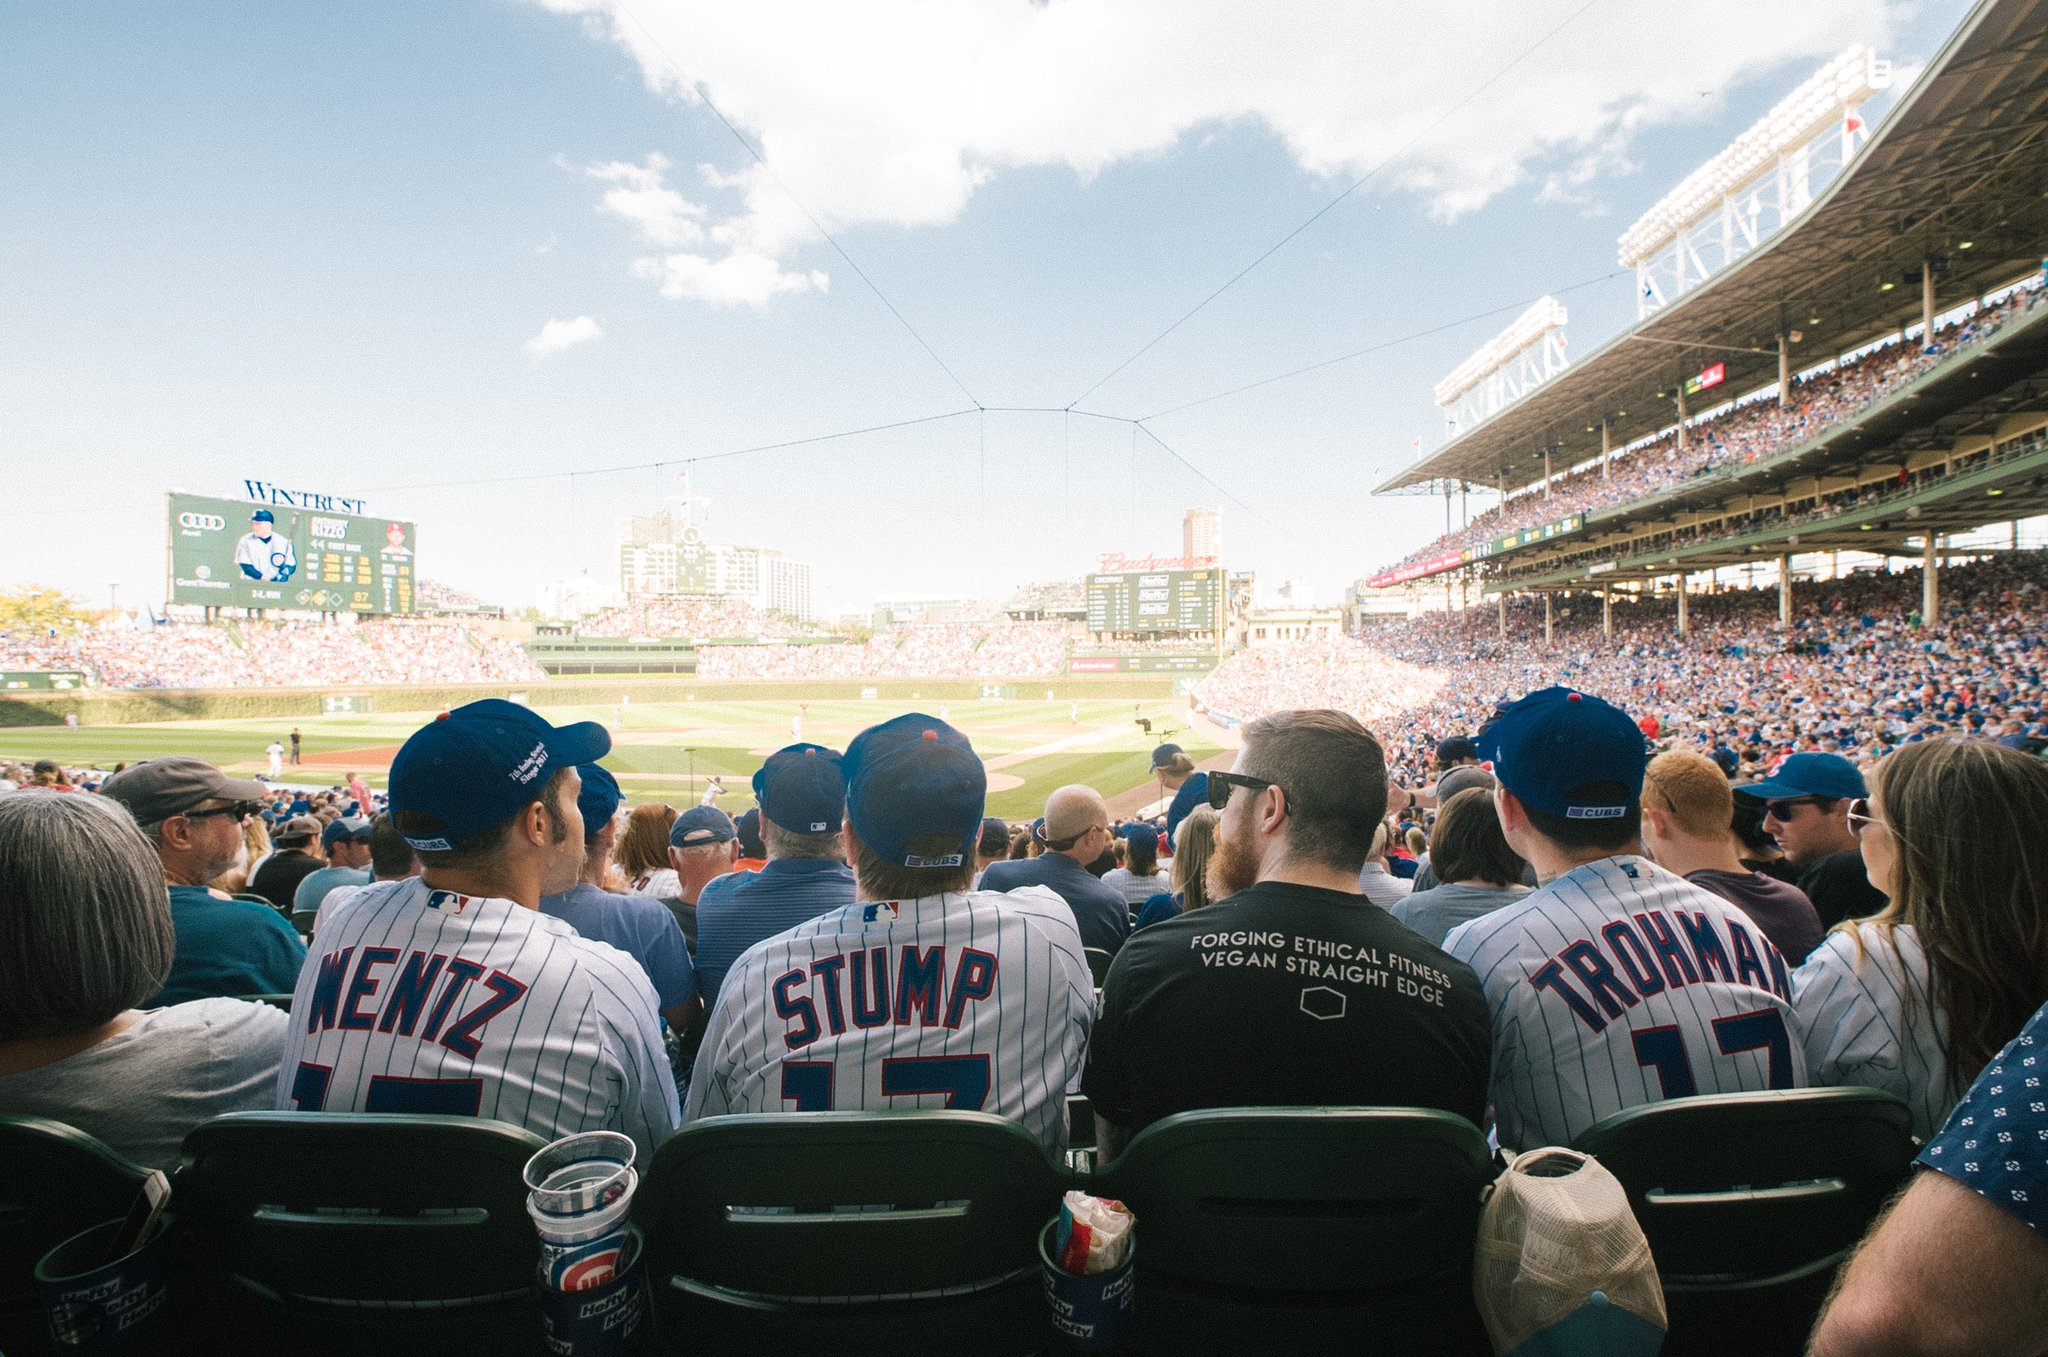 Take me out to the ballgame ⚾️  s/o to the @cubs, thanks for having us https://t.co/g1Bww0wOSF